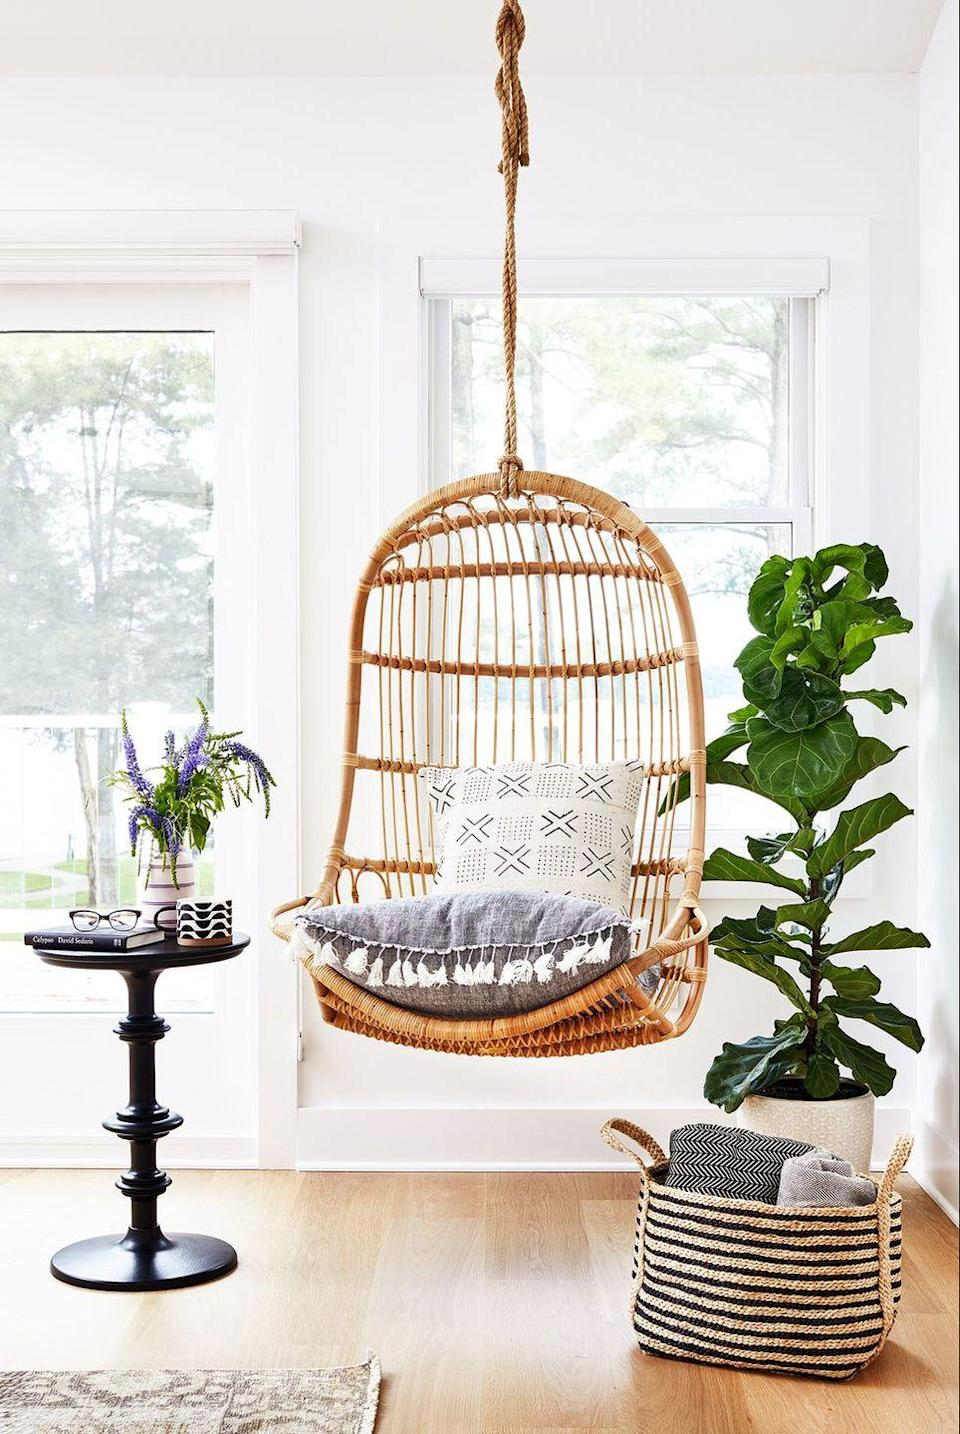 "<p>Turn a bare corner into a Pinterest-worthy reading nook with this rattan chair and end table combo. </p><p><strong>RELATED:</strong> <a href=""https://www.goodhousekeeping.com/home/decorating-ideas/g35132638/reading-nook-ideas/"" rel=""nofollow noopener"" target=""_blank"" data-ylk=""slk:Reading Nook Decorating Ideas"" class=""link rapid-noclick-resp"">Reading Nook Decorating Ideas </a></p>"